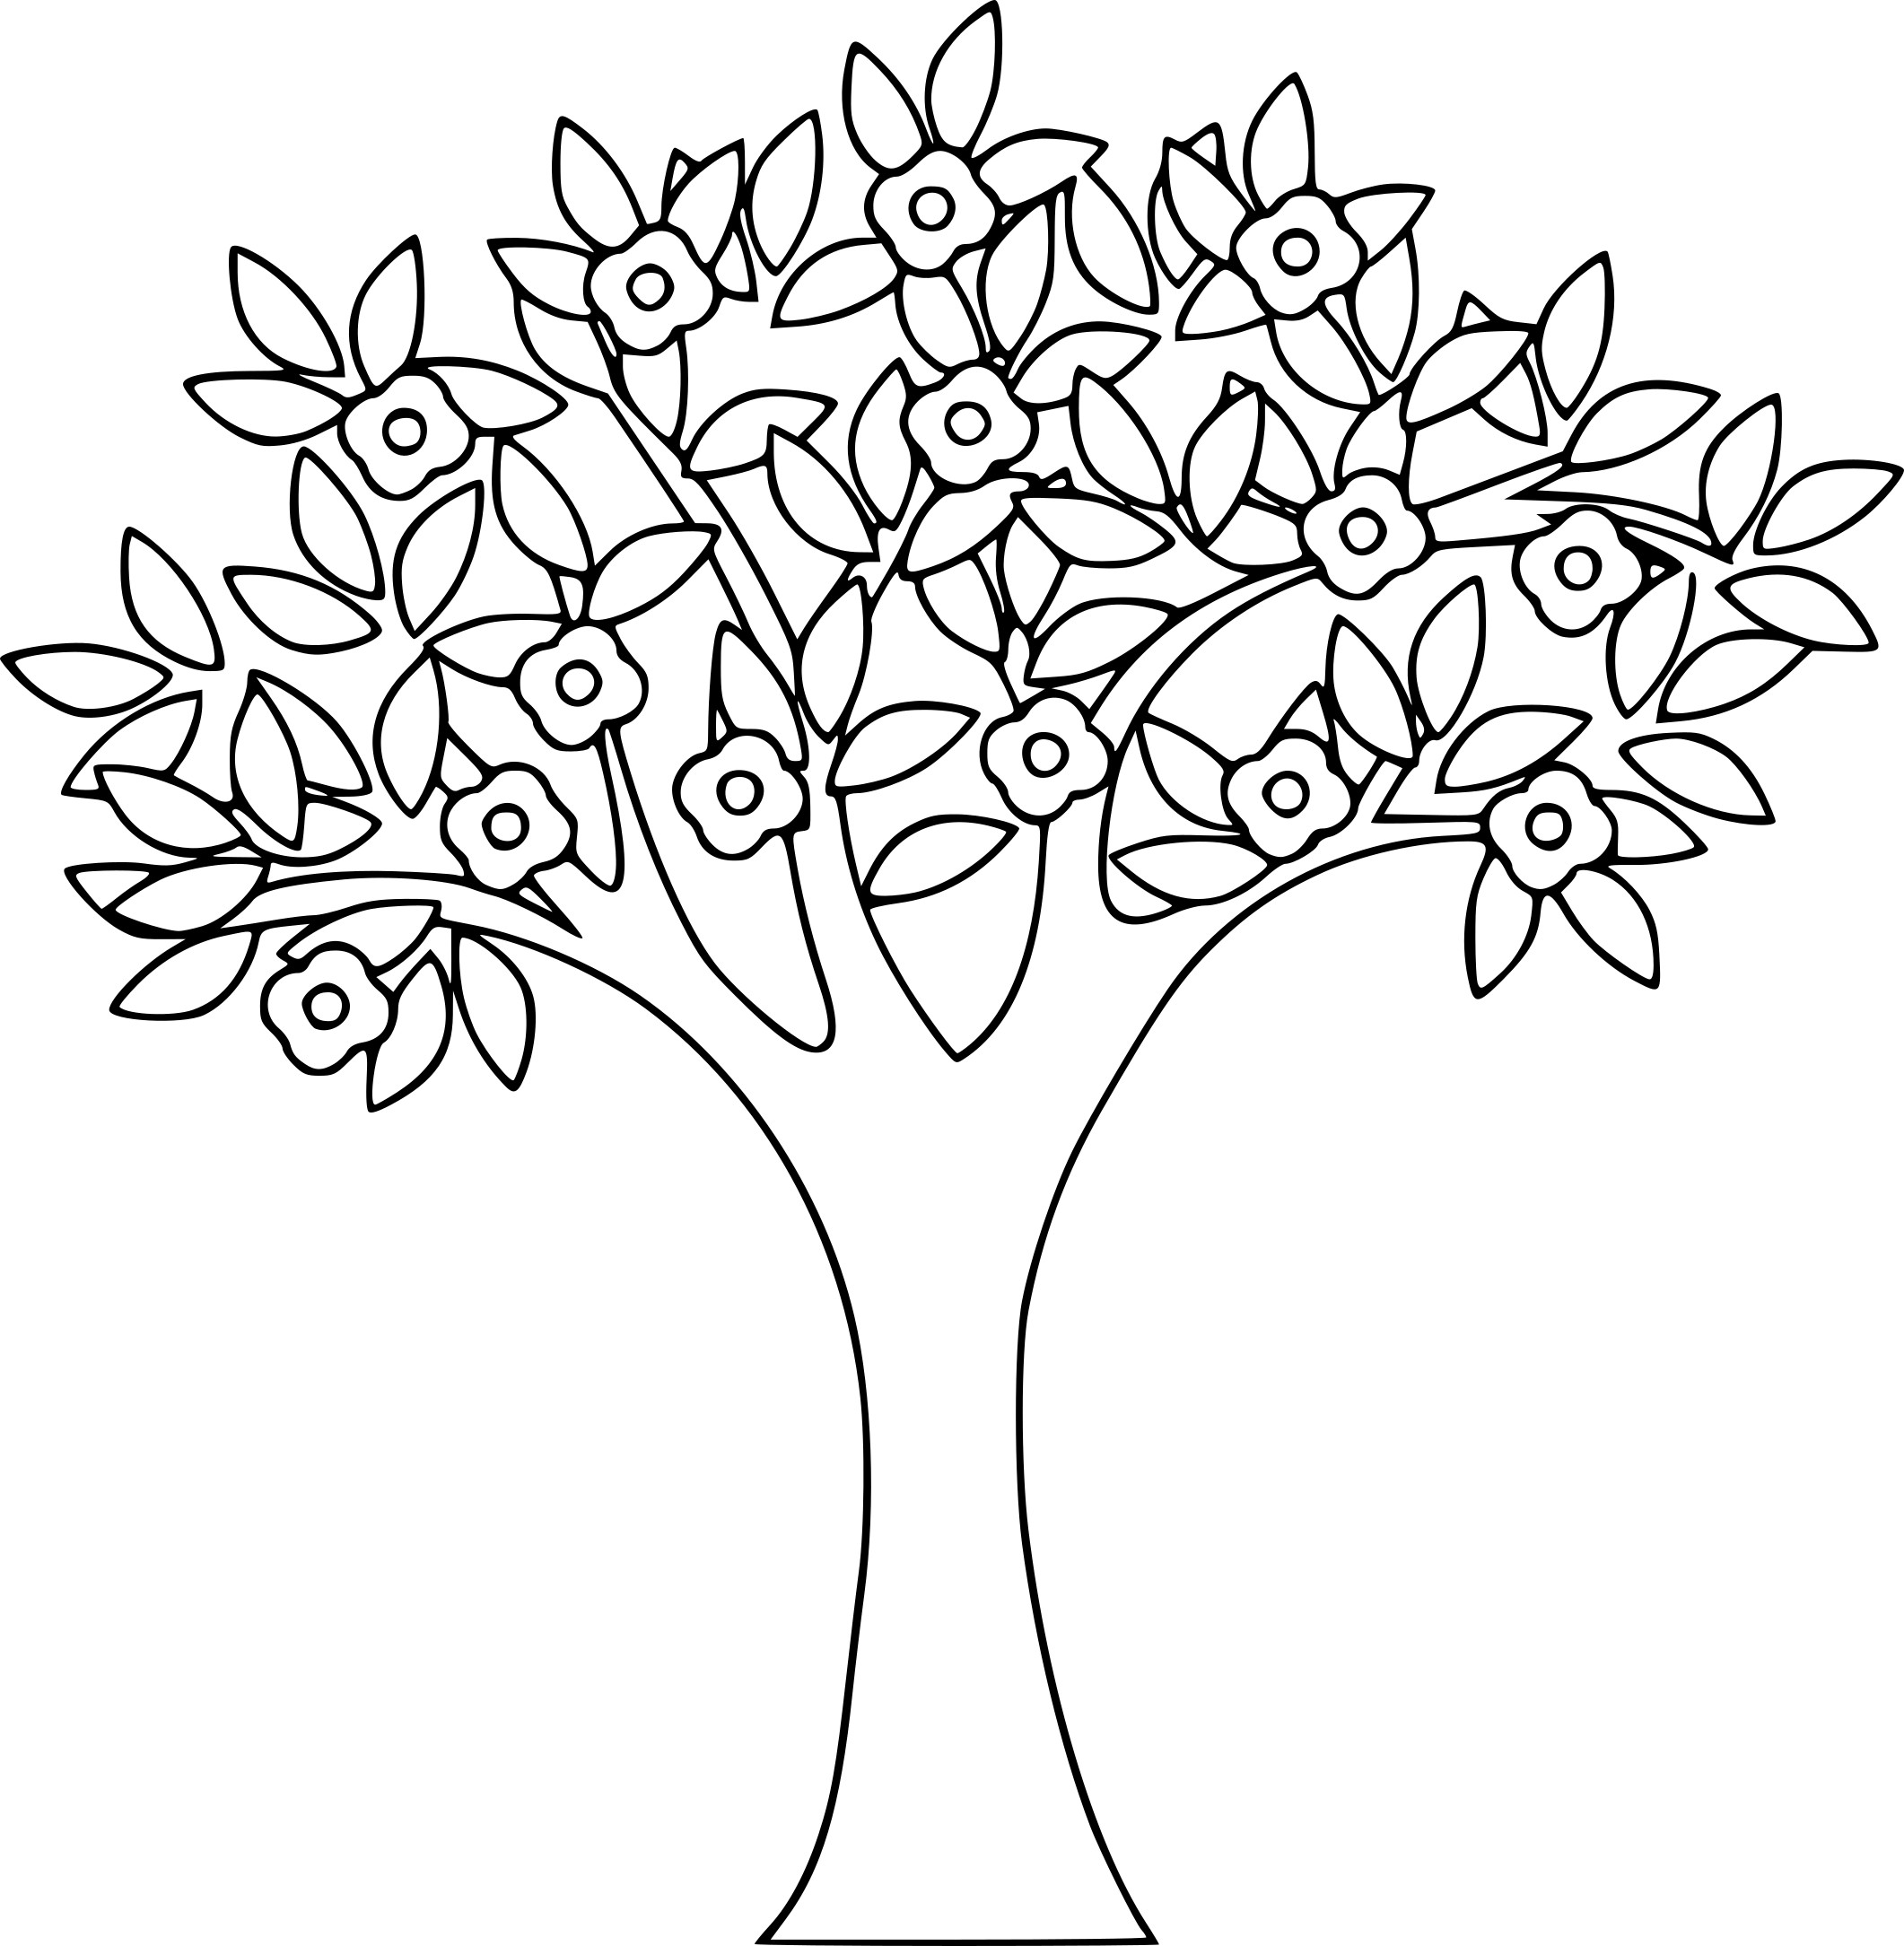 Coloriage arbre printemps imprimer sur coloriages info - Dessin arbre simple ...